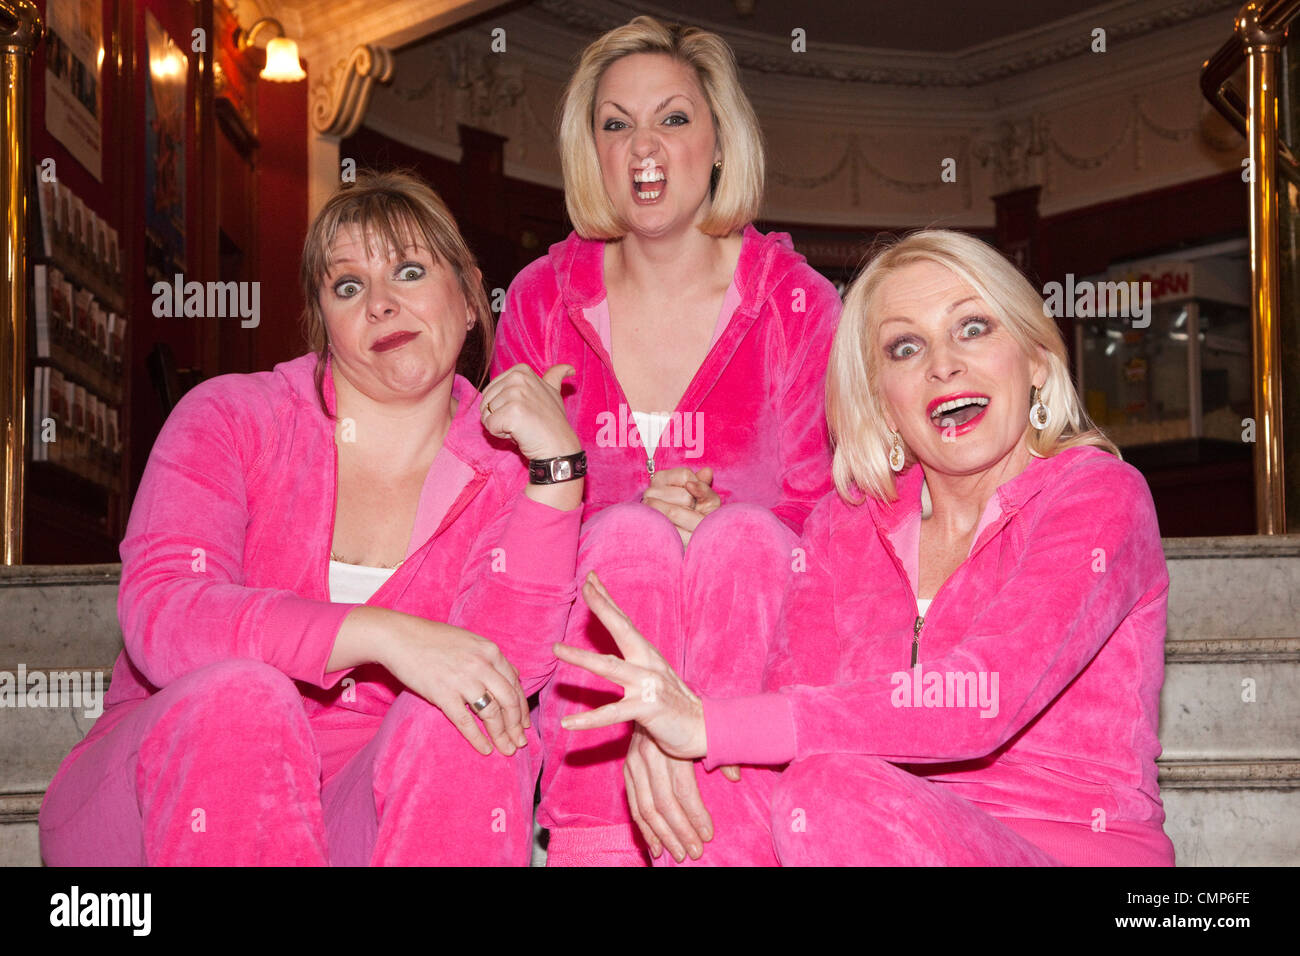 Hormonal Housewives' a comedy starring Margi Clarke, Laura Checkley and Julie Coombe, start of UK tour. - Stock Image